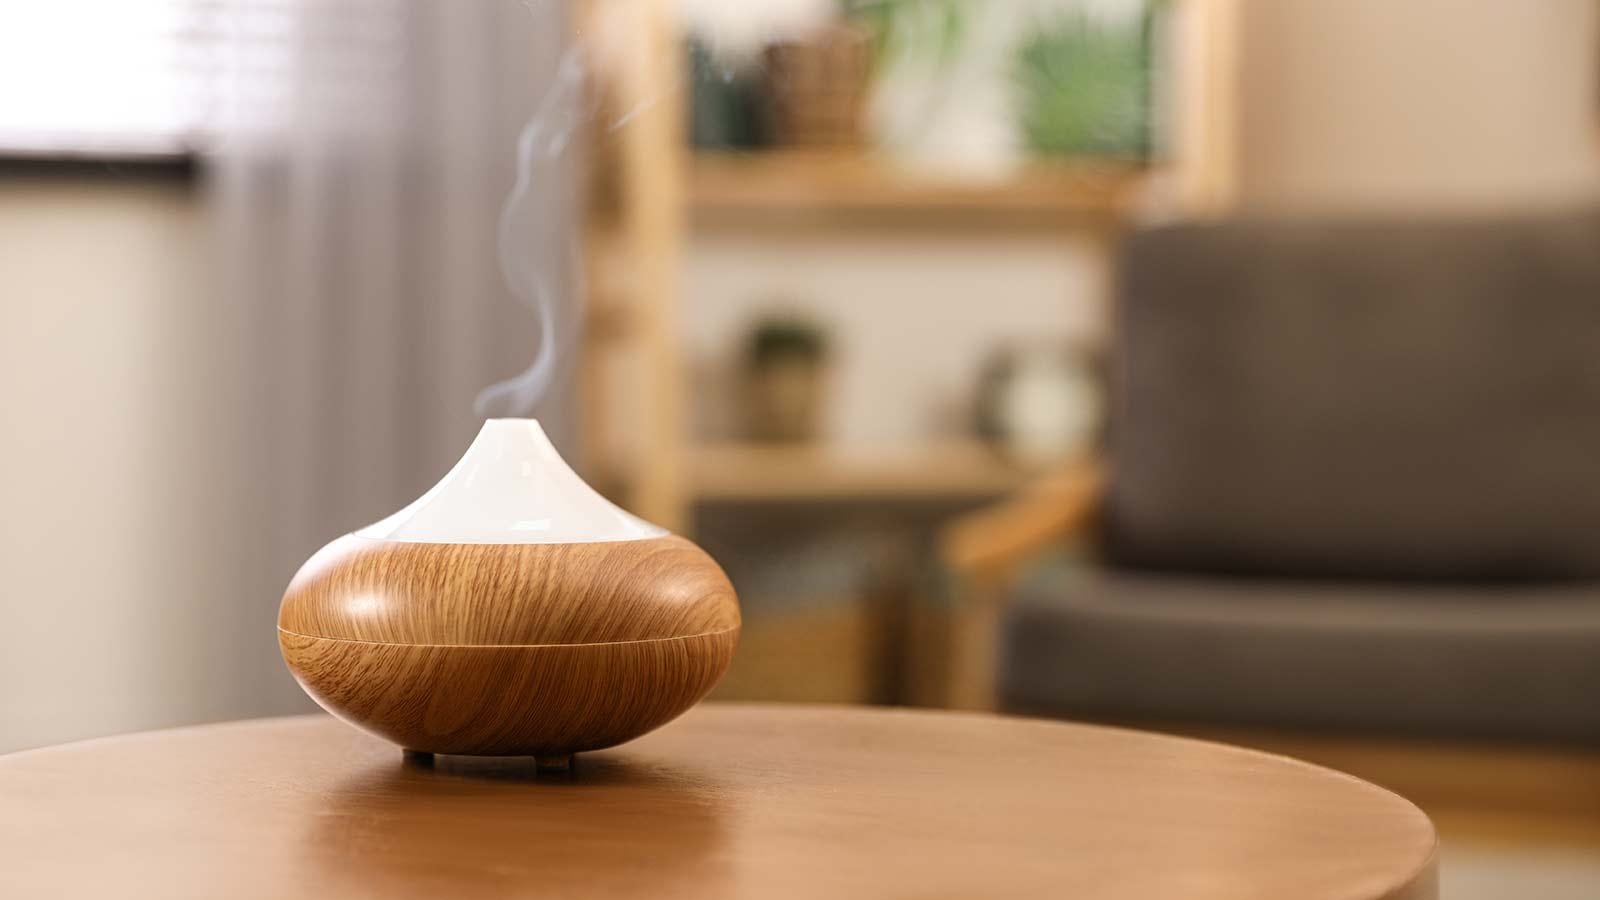 An oil diffuser on a living room table, a fine mist of scent drifting out of it.